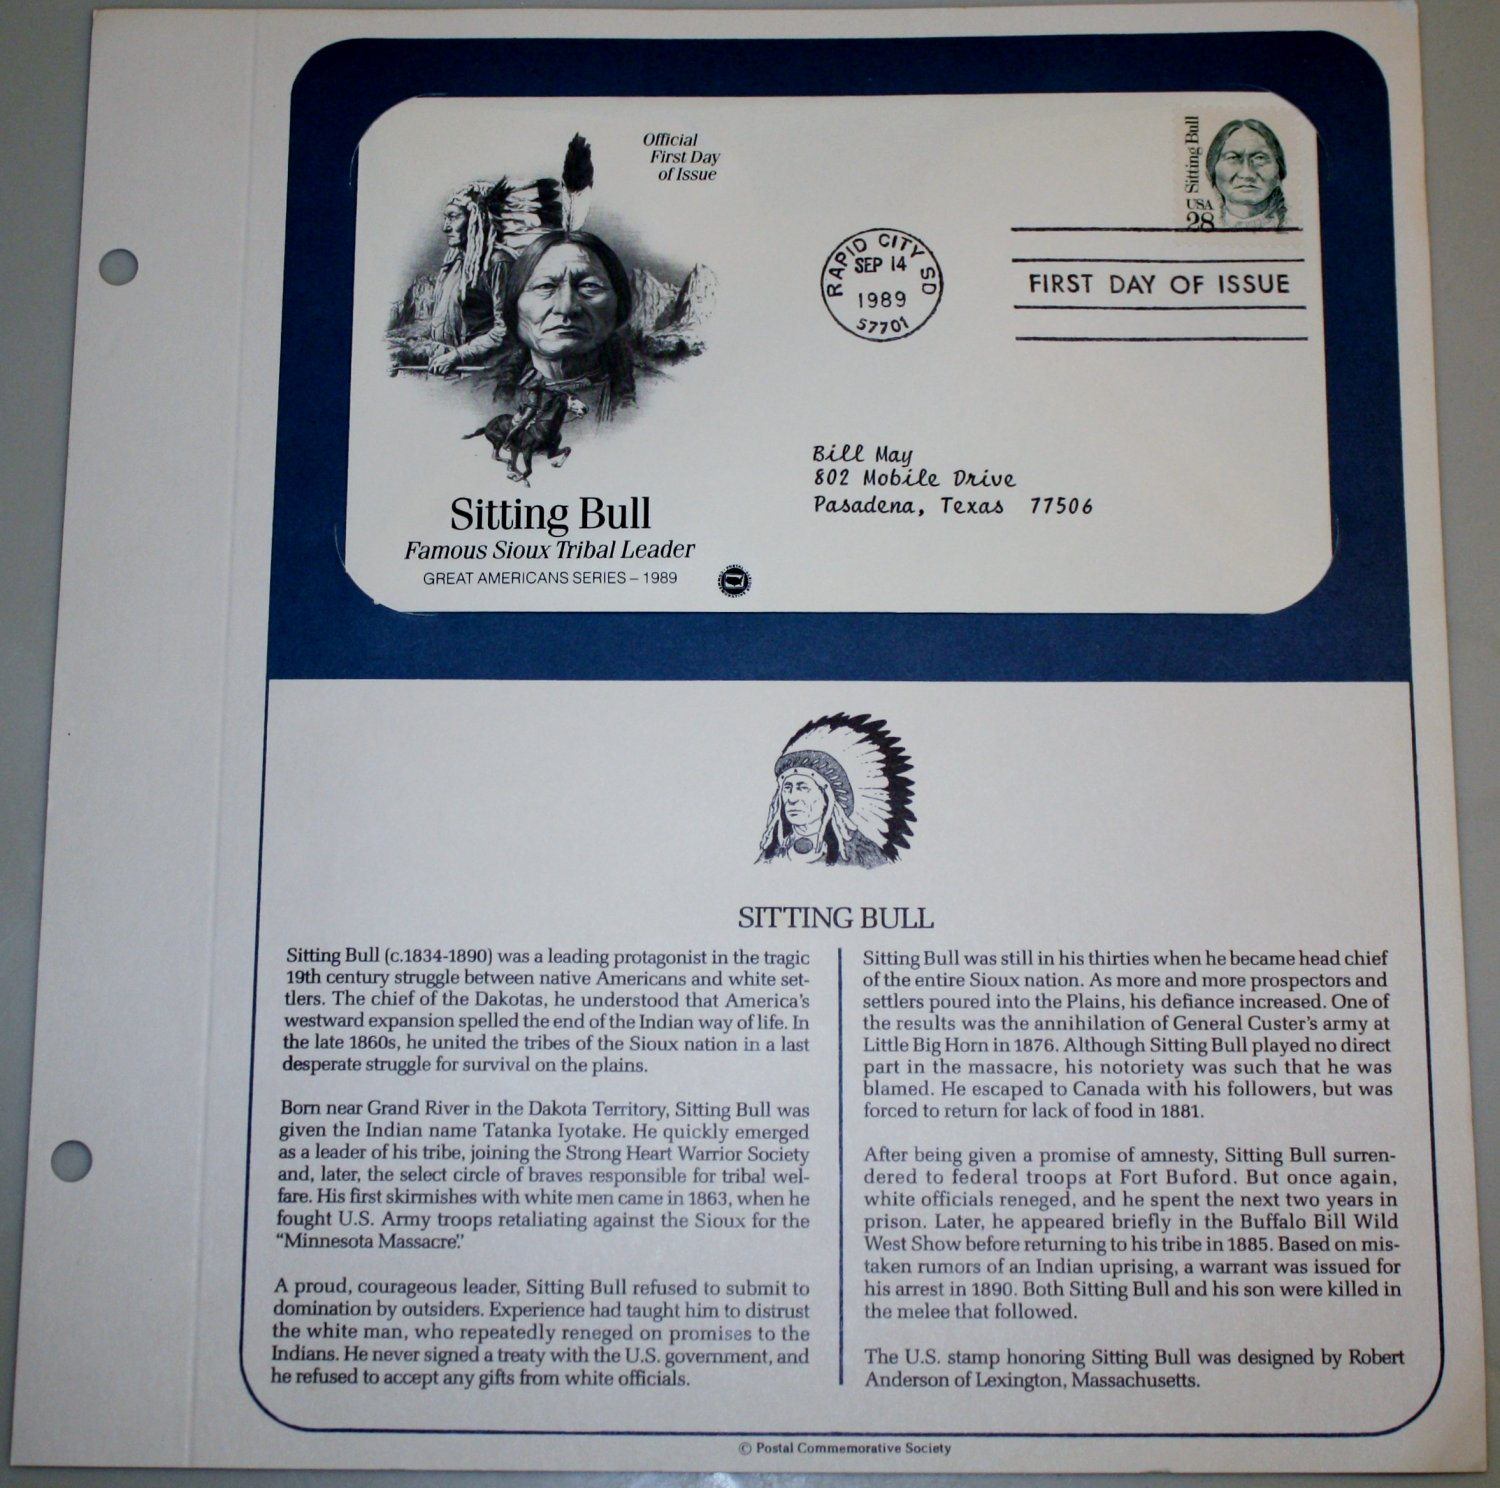 1989 First Day of Issue - Sitting Bull